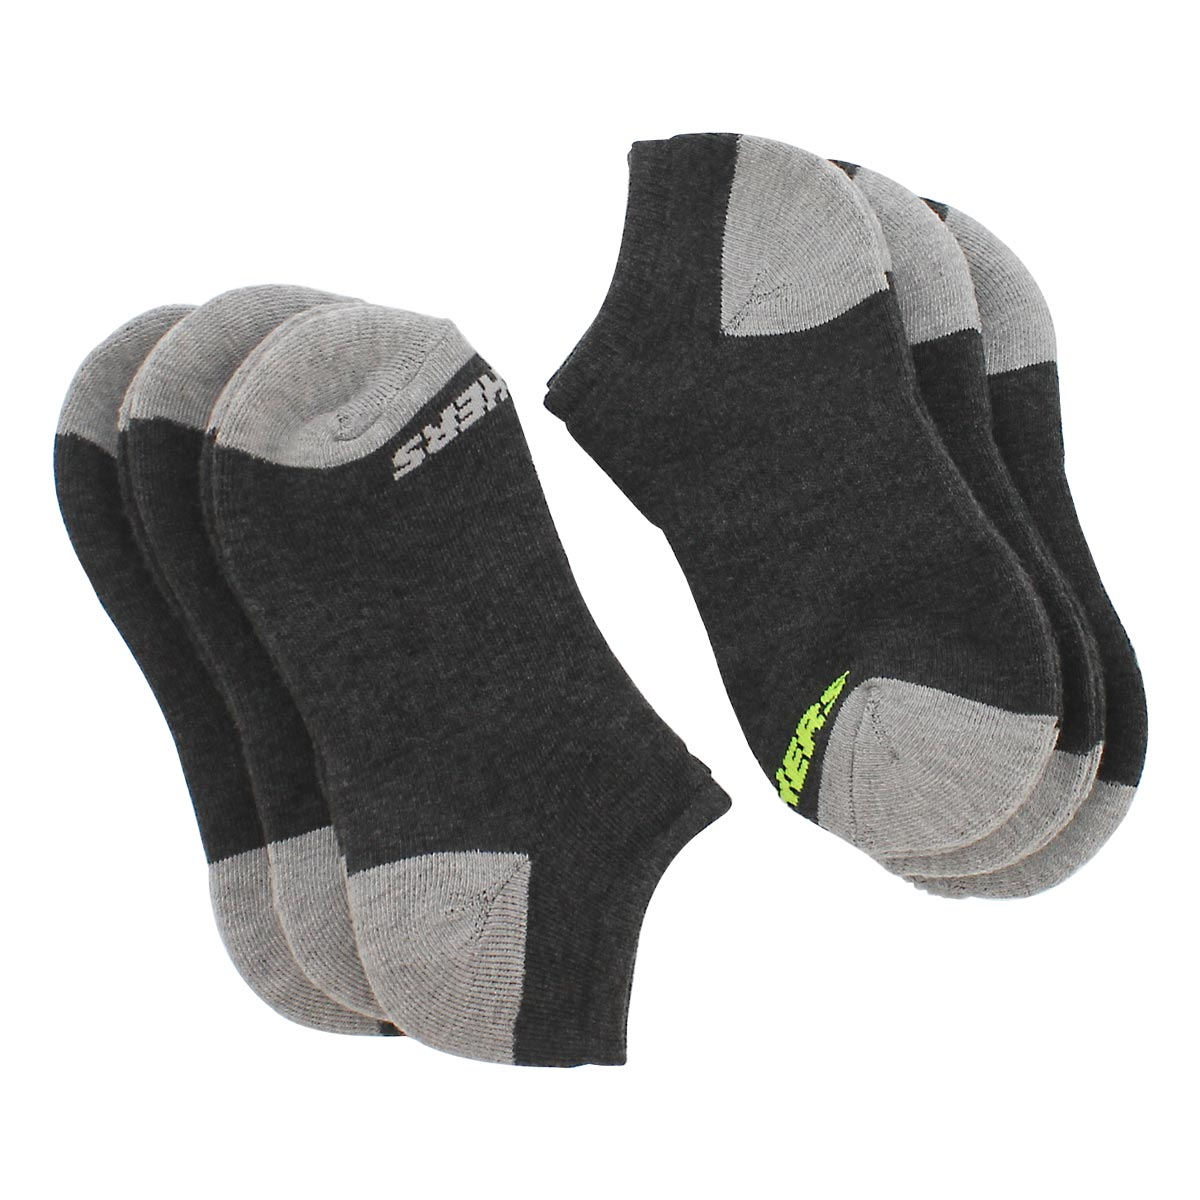 Bys NoShow FullTerry blk mlt sock 6p